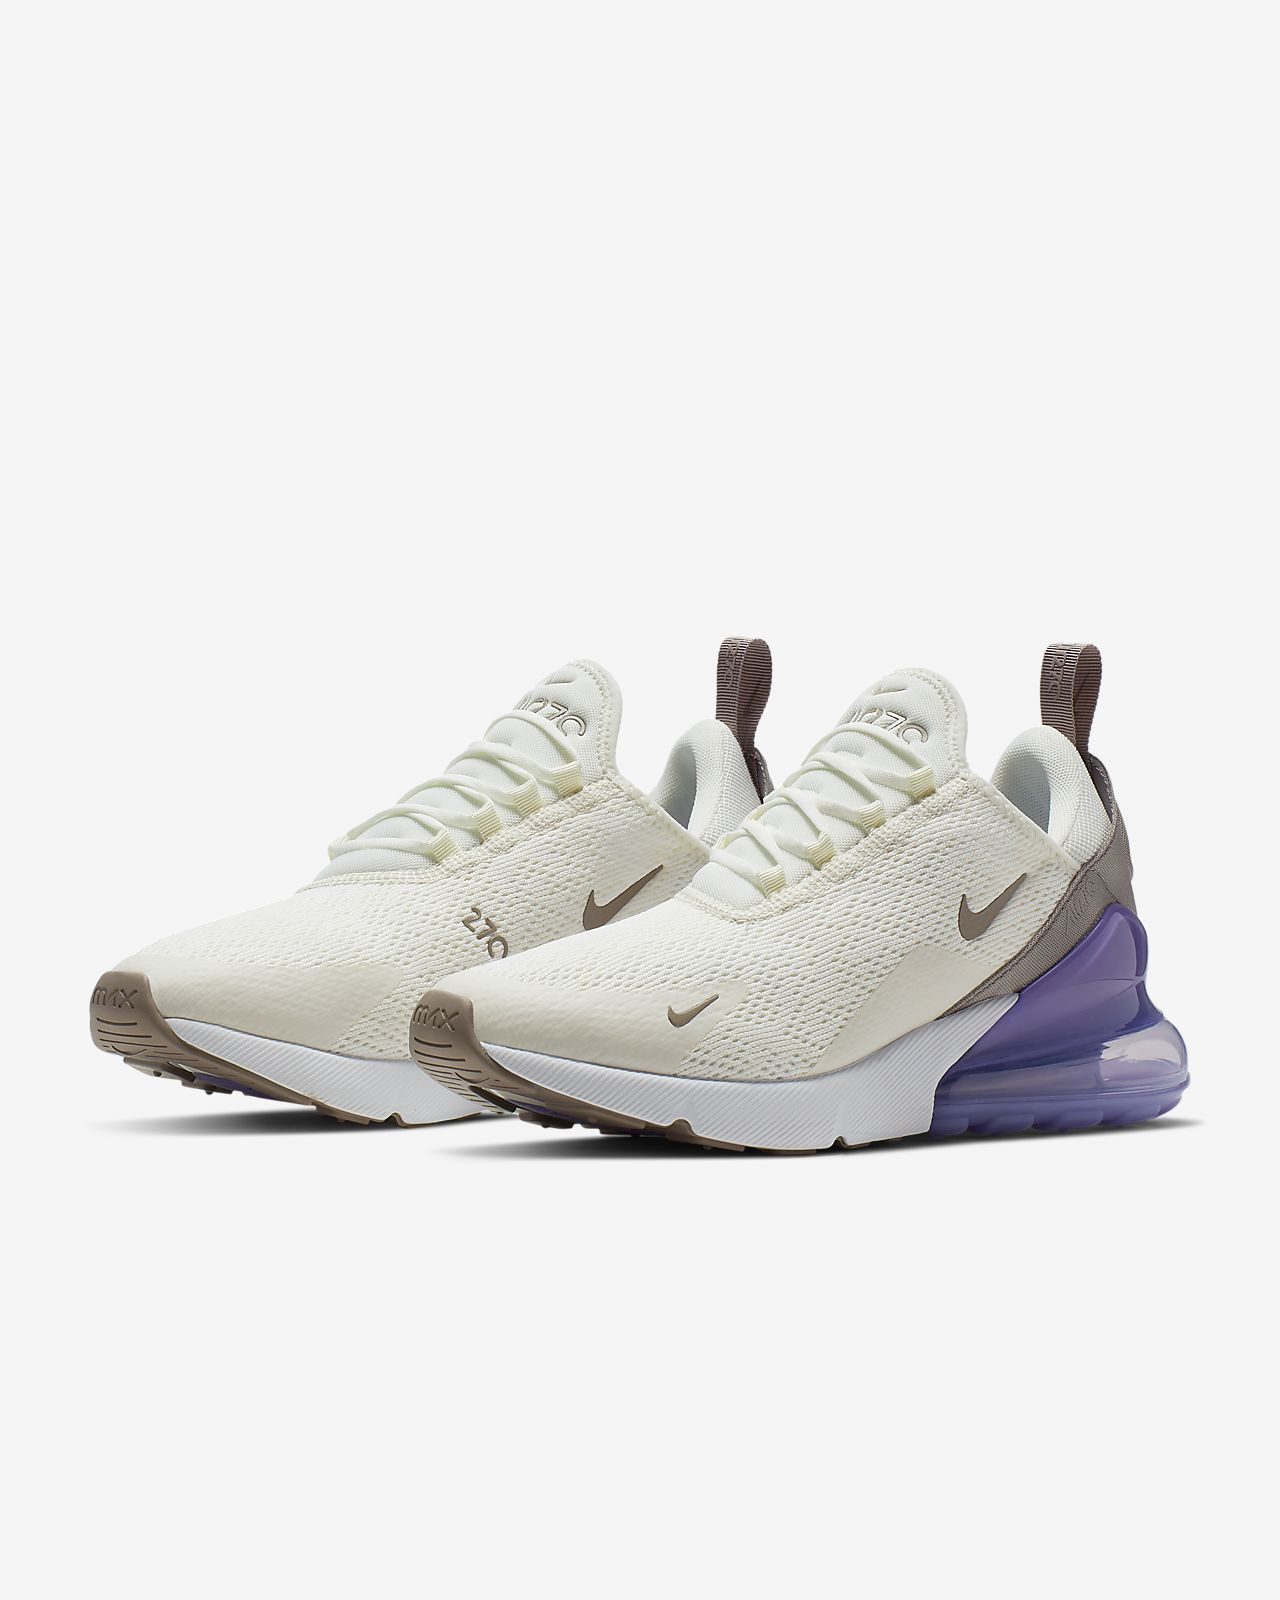 separation shoes 458ca cfce5 ... Nike Air Max 270 Women s Shoe